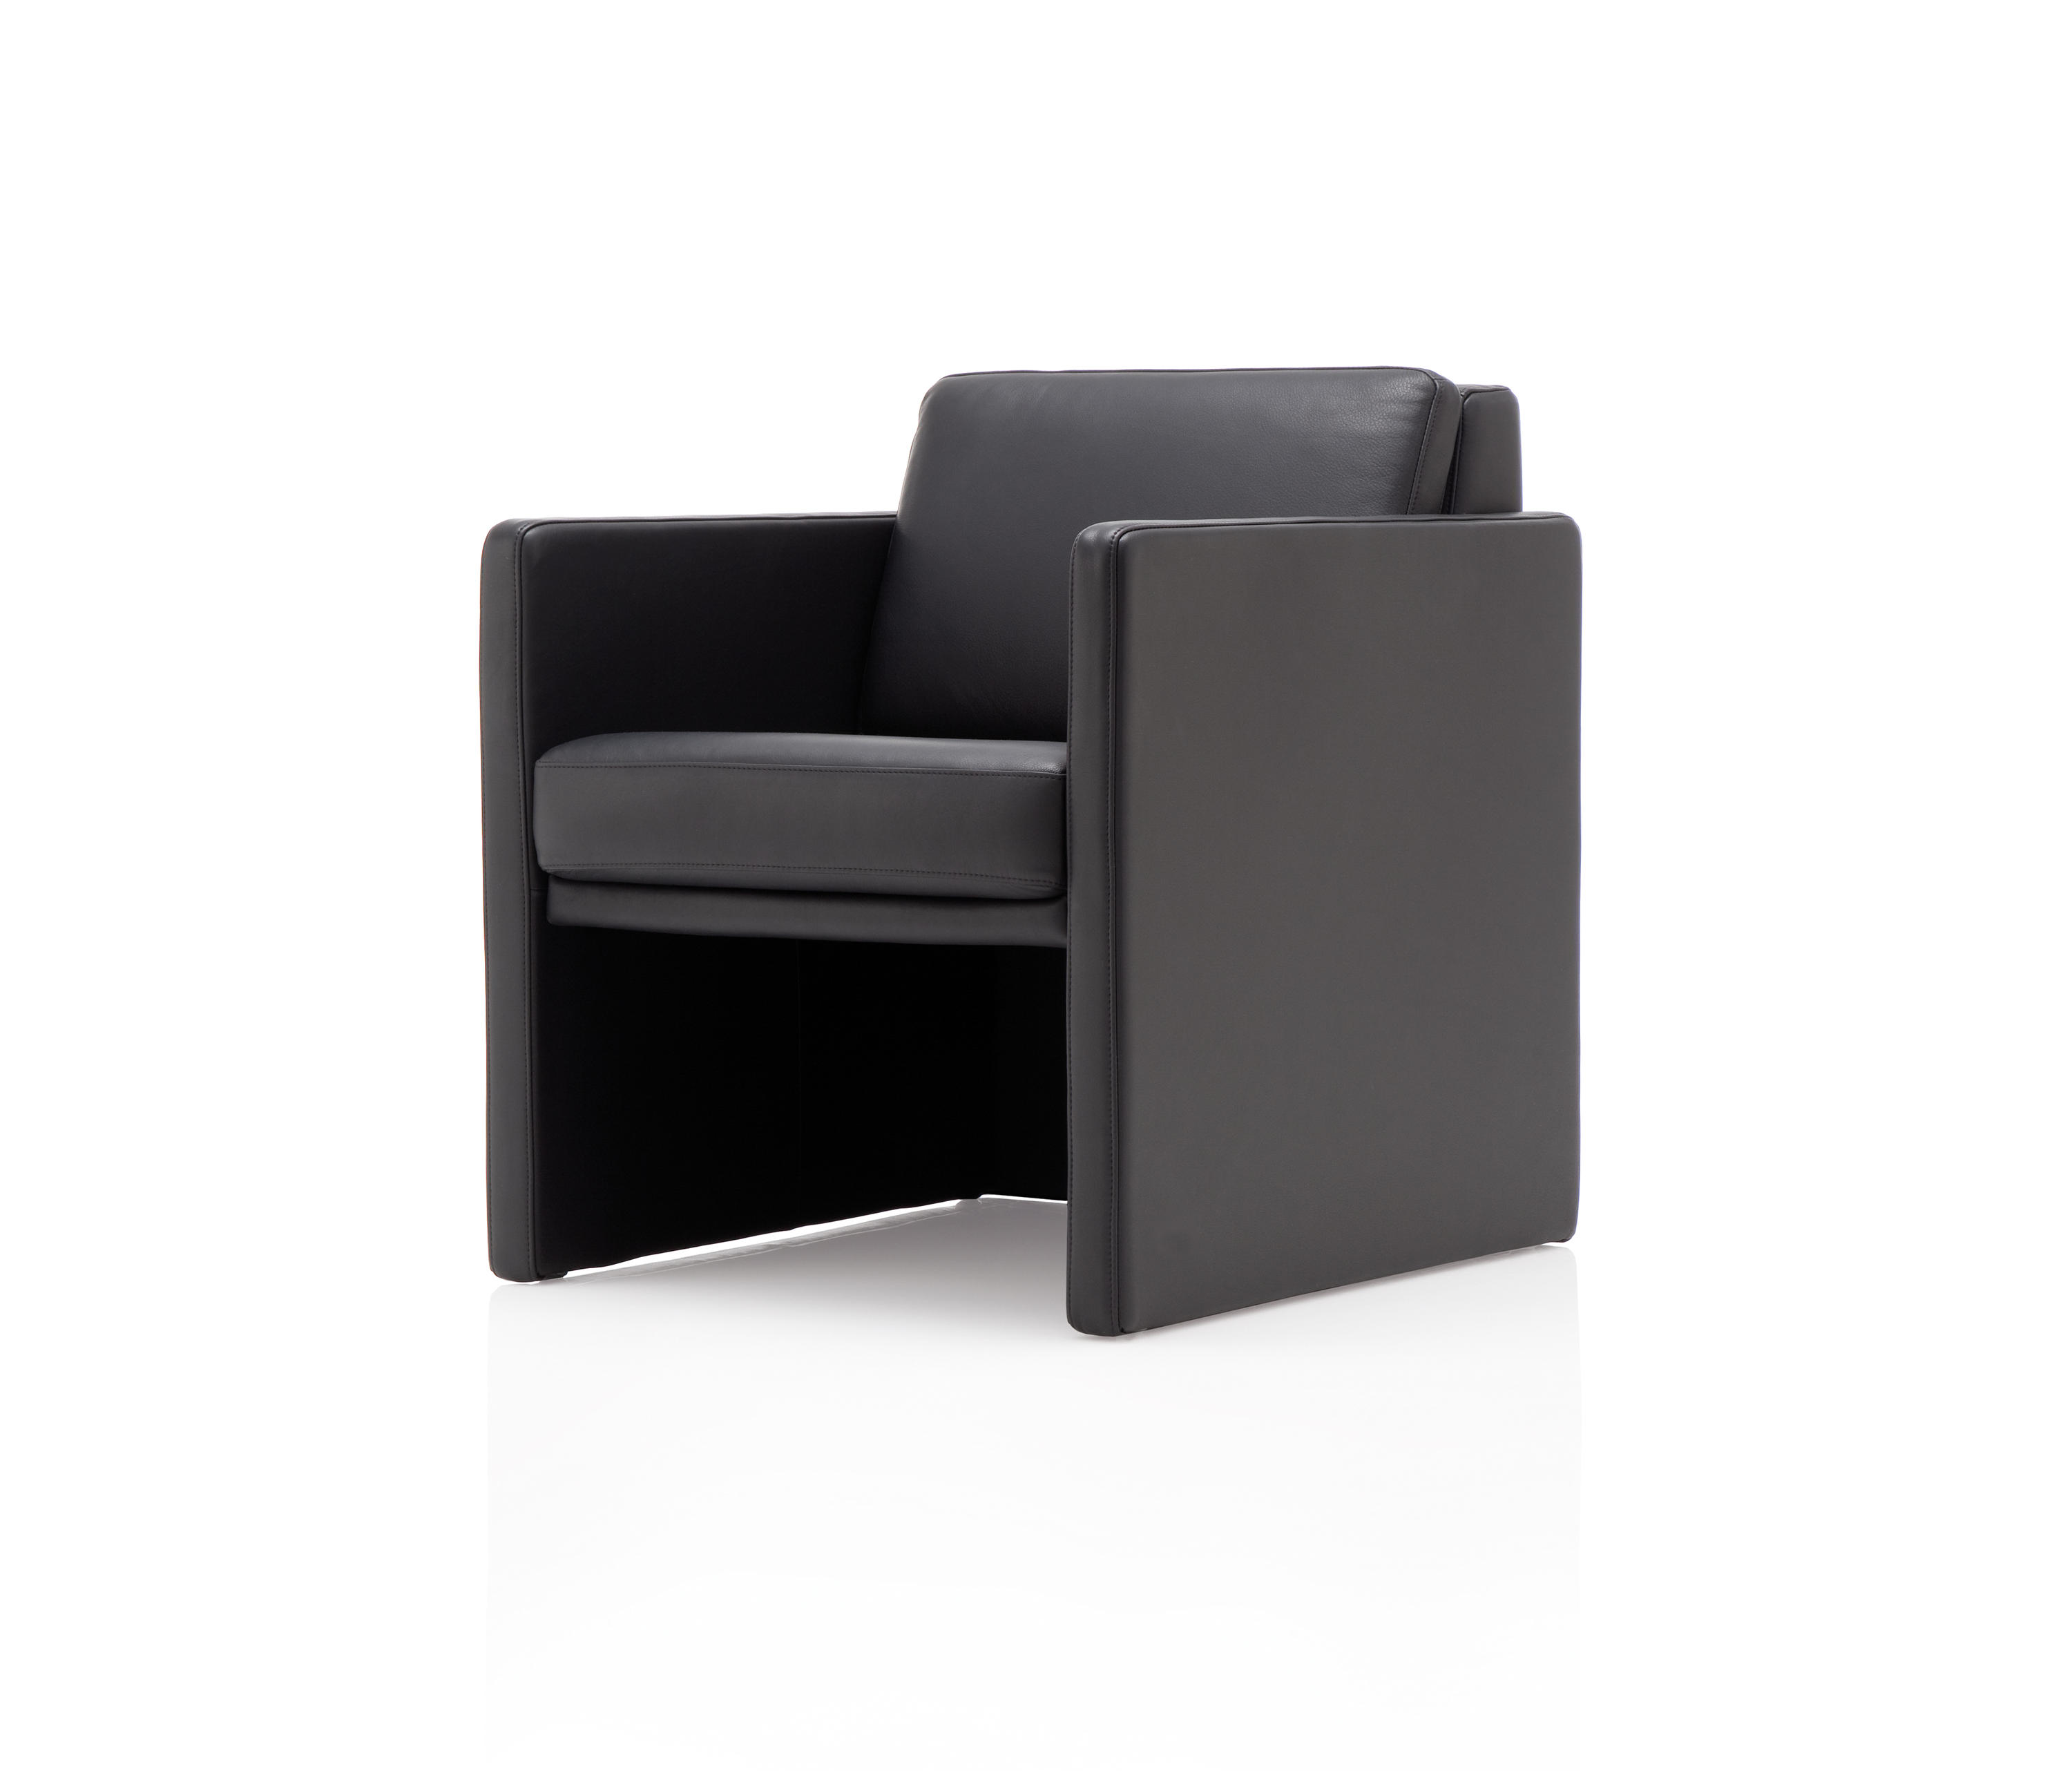 Rolf Benz Sessel 684 Rolf Benz 011 Ego Armchairs From Rolf Benz Architonic